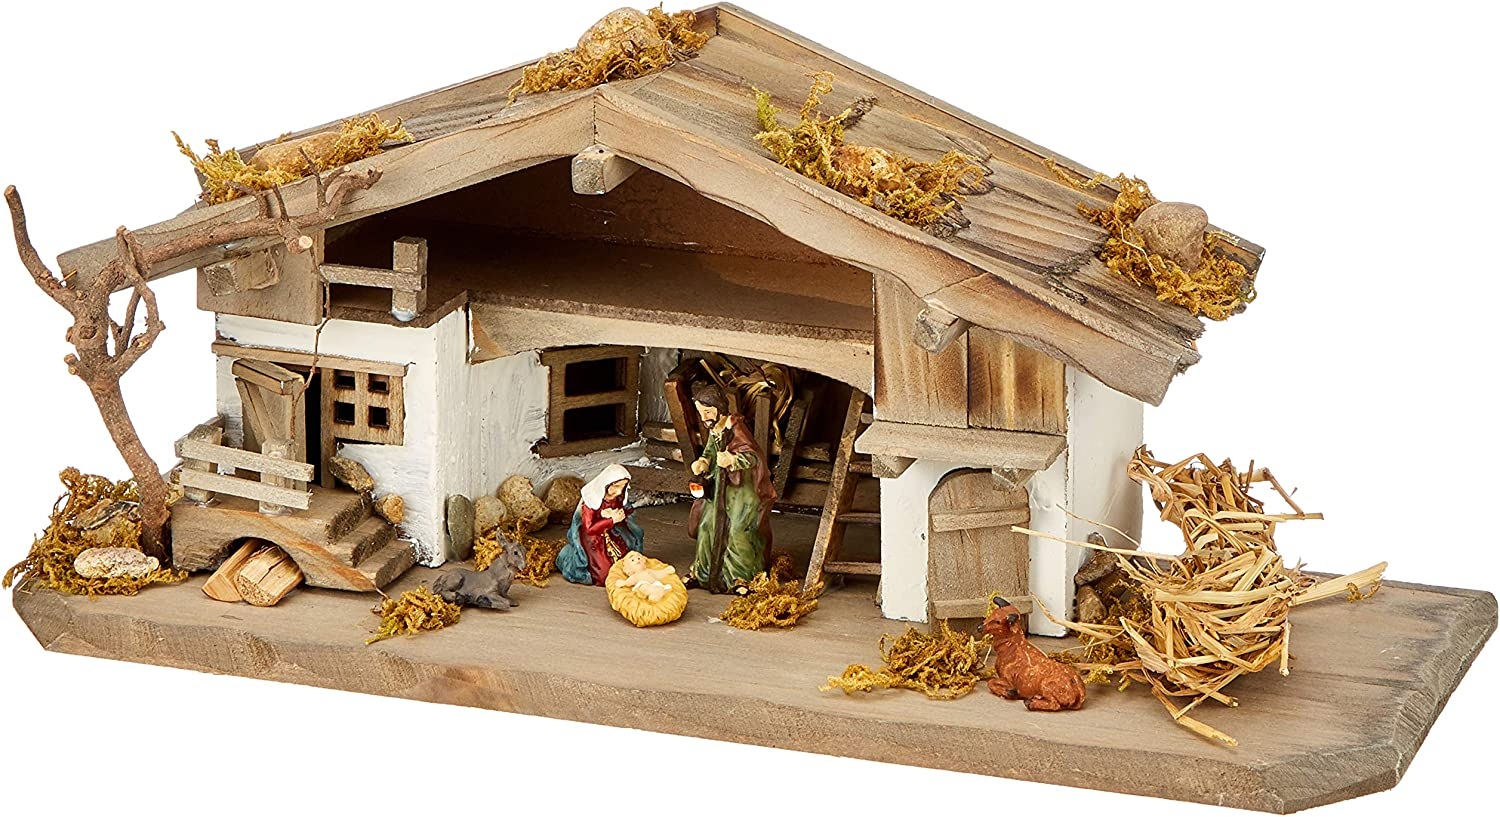 Unknown Nk04 Nativity Stable Nativity Scene Wooden Nativity Scene Table Nativity Scene Includes 3 Piece Figure Set Solid Wood Colourful 30 X 11 X 13 Cm Amazon Co Uk Kitchen Home